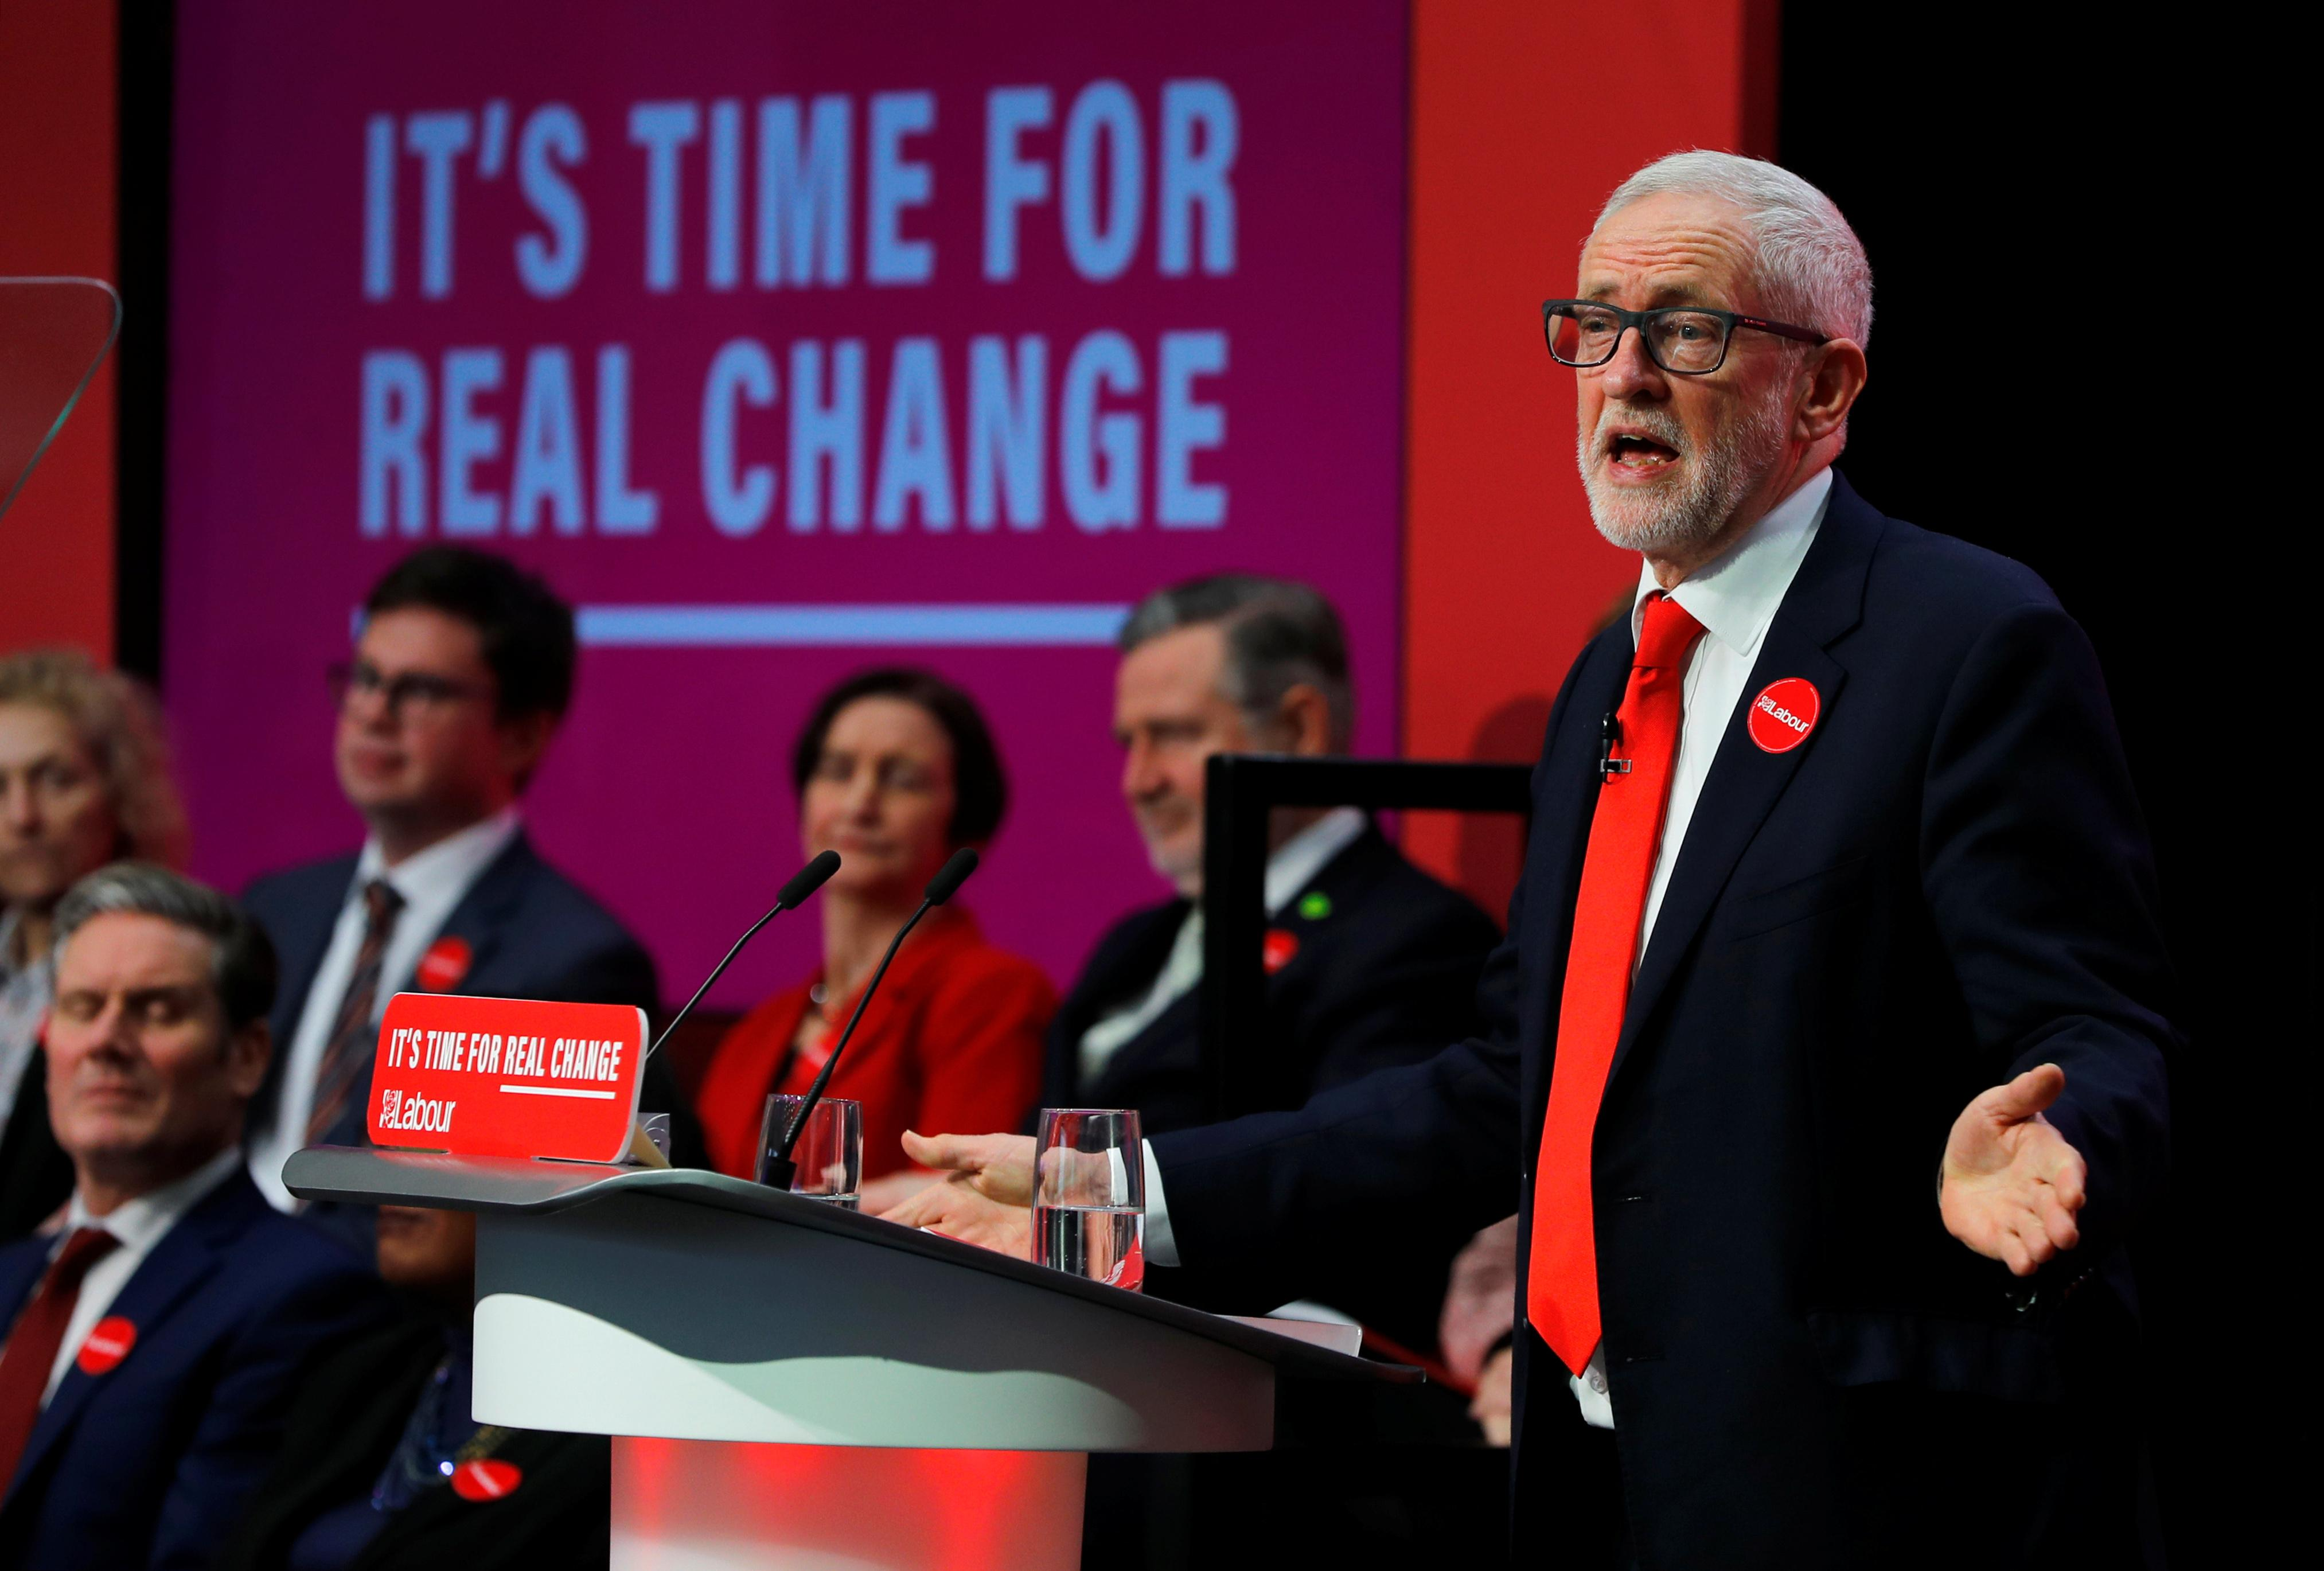 Labour unveils 'radical and ambitious' plan to remake Britain